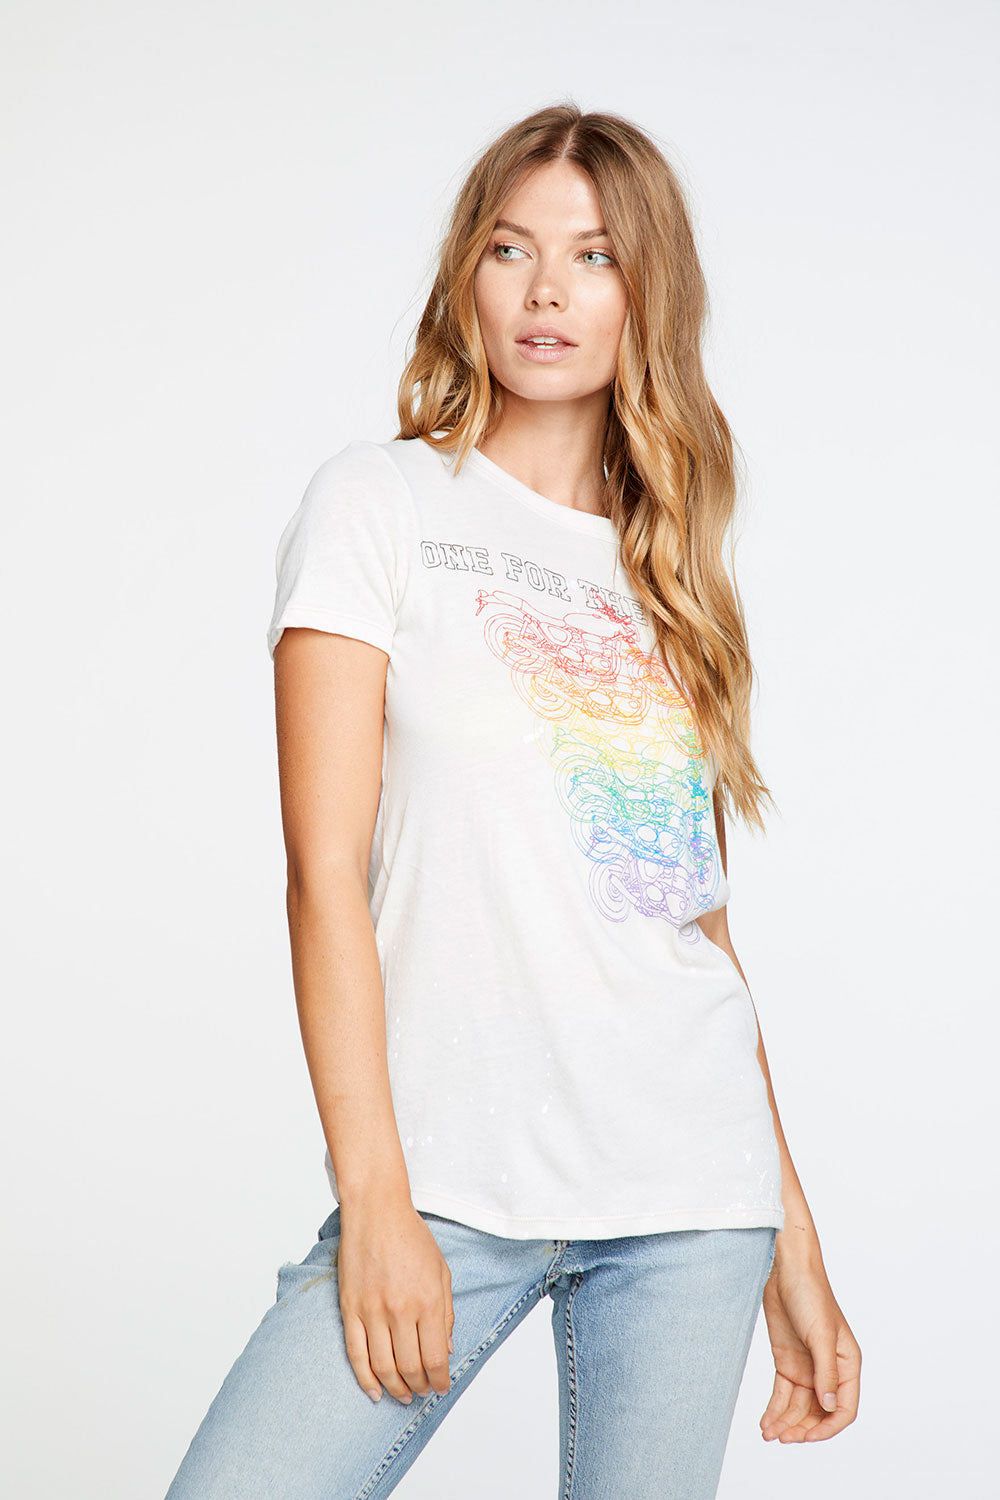 One For The Road Tee WOMENS chaserbrand4.myshopify.com